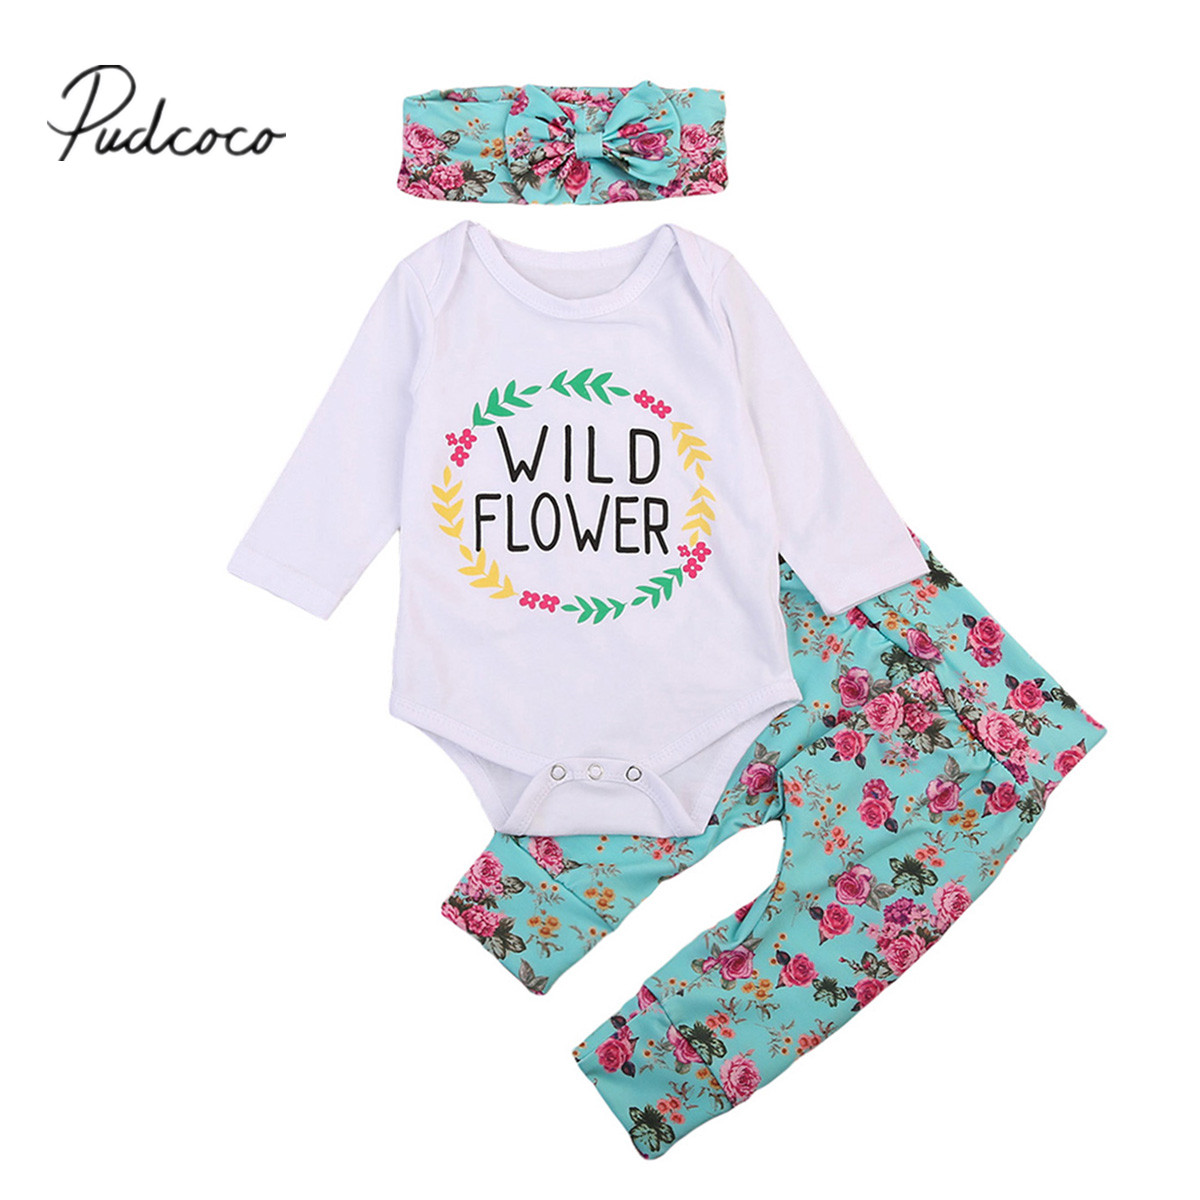 Pudcoco 3PCS Newborn Baby Girls Clothes Playsuit Flower Pants Bodysuit Outfit Set Clothes 0-24M